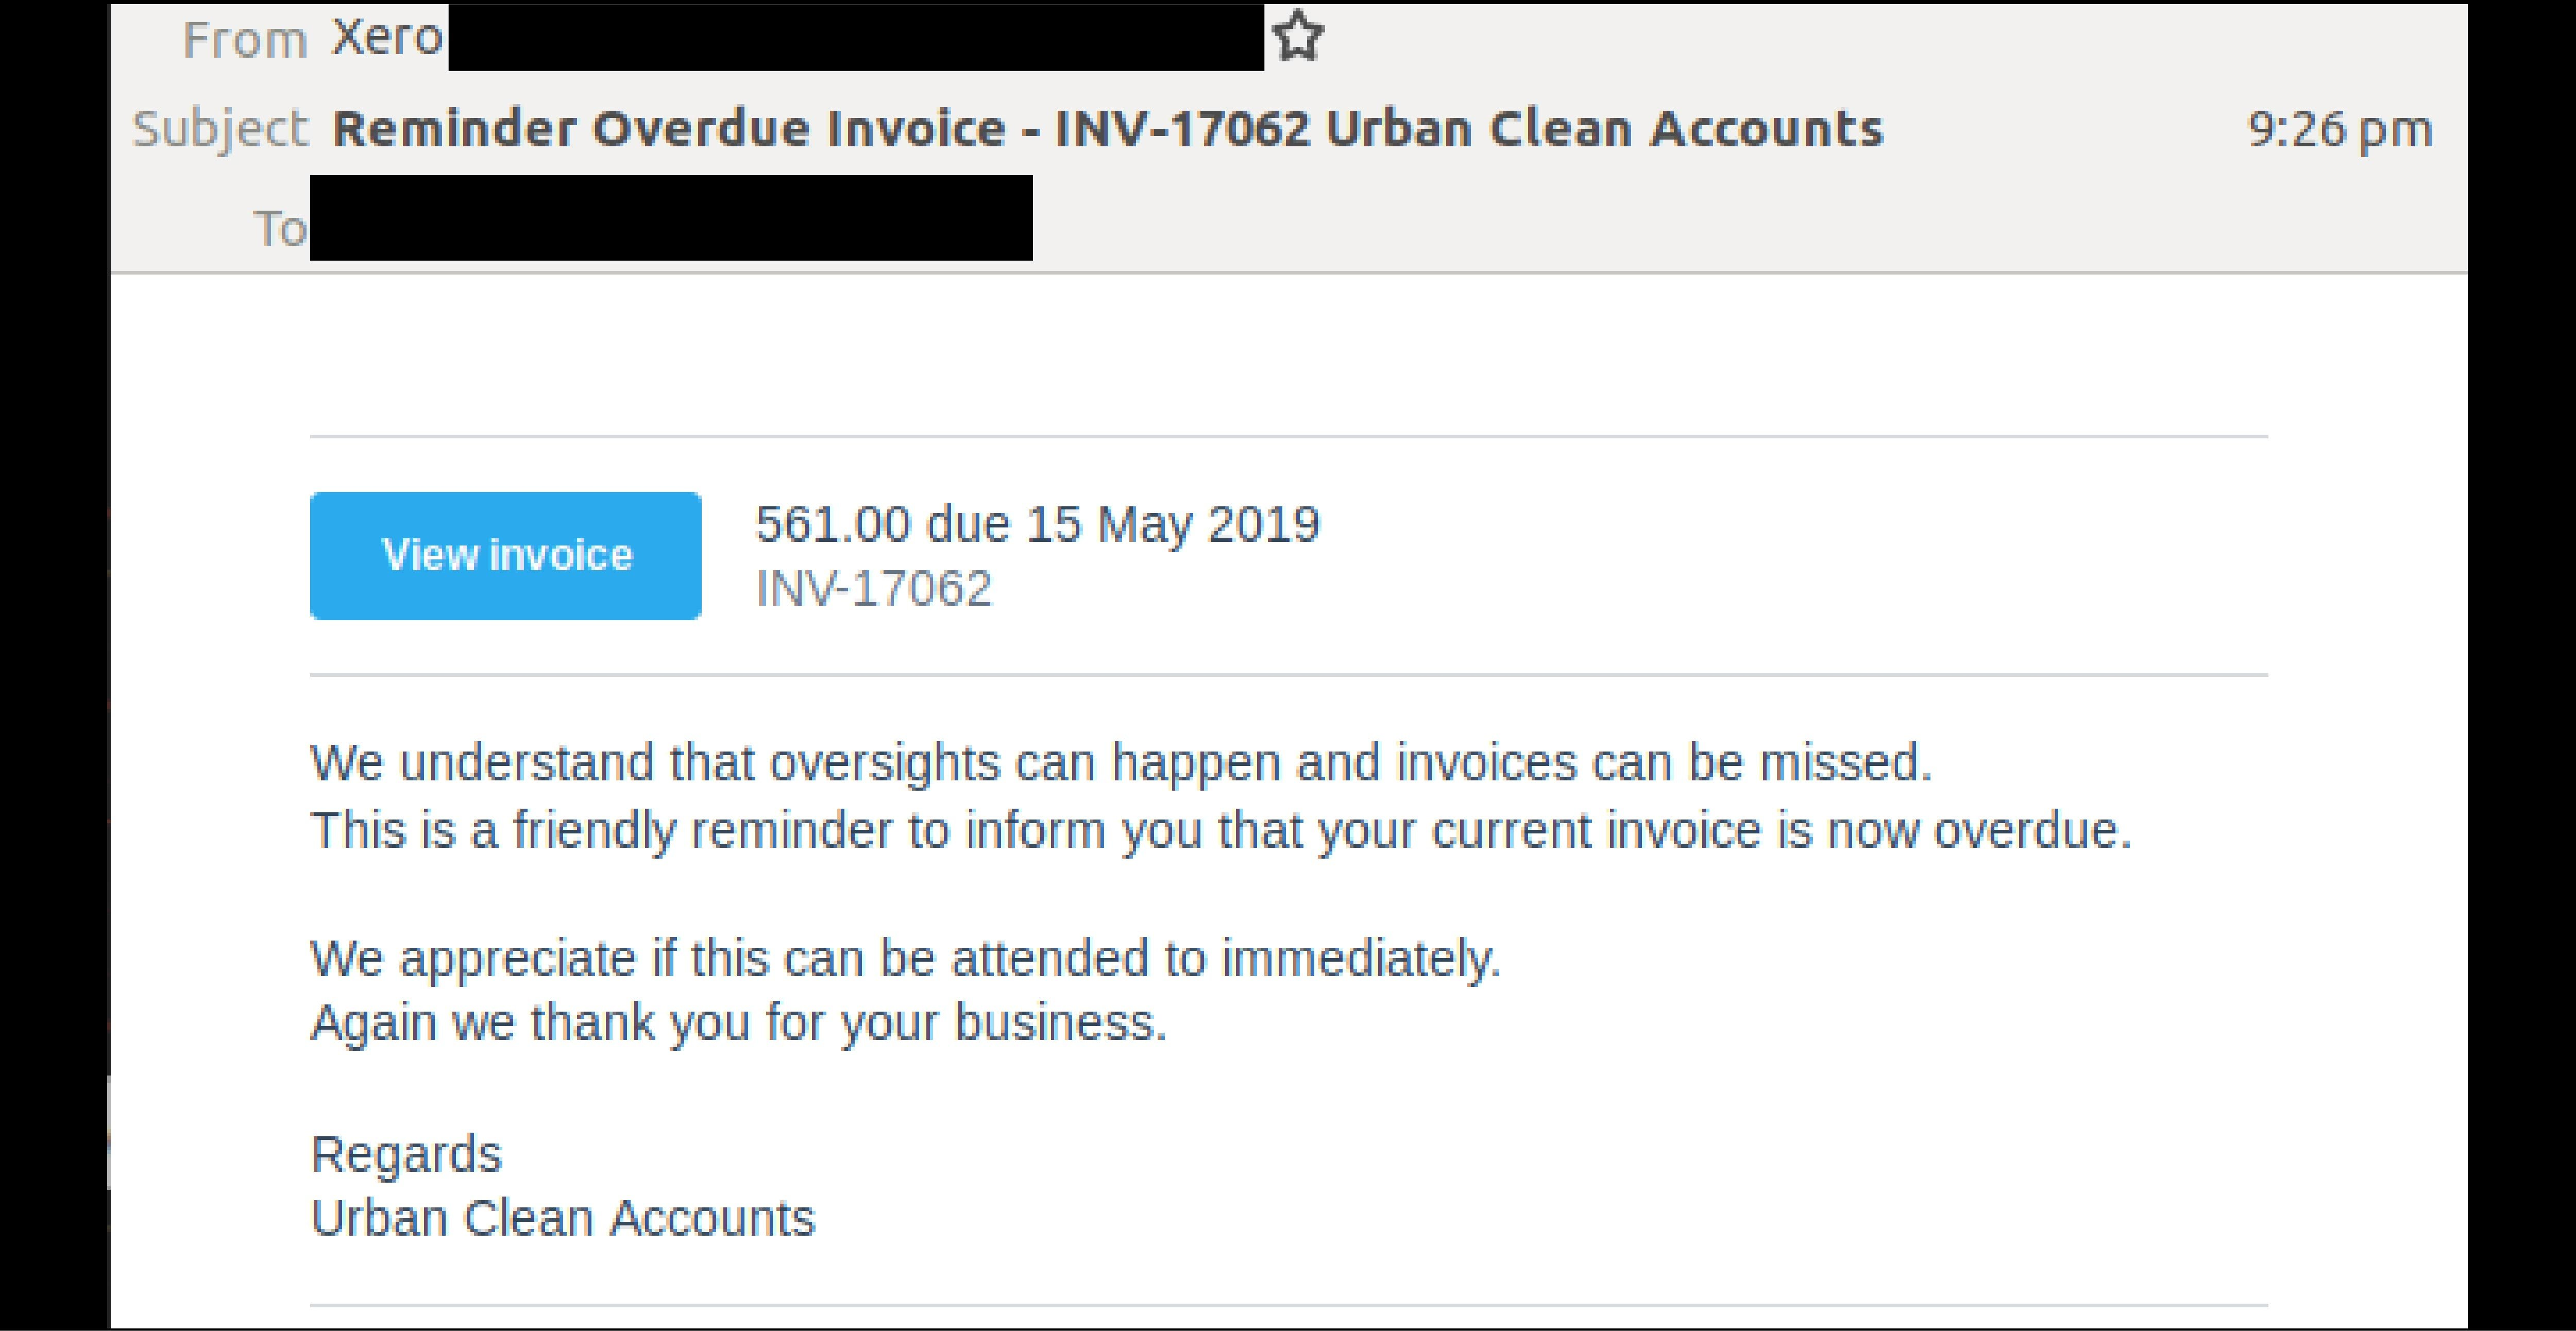 Invoice email scam spoofing Xero attacks inboxes again